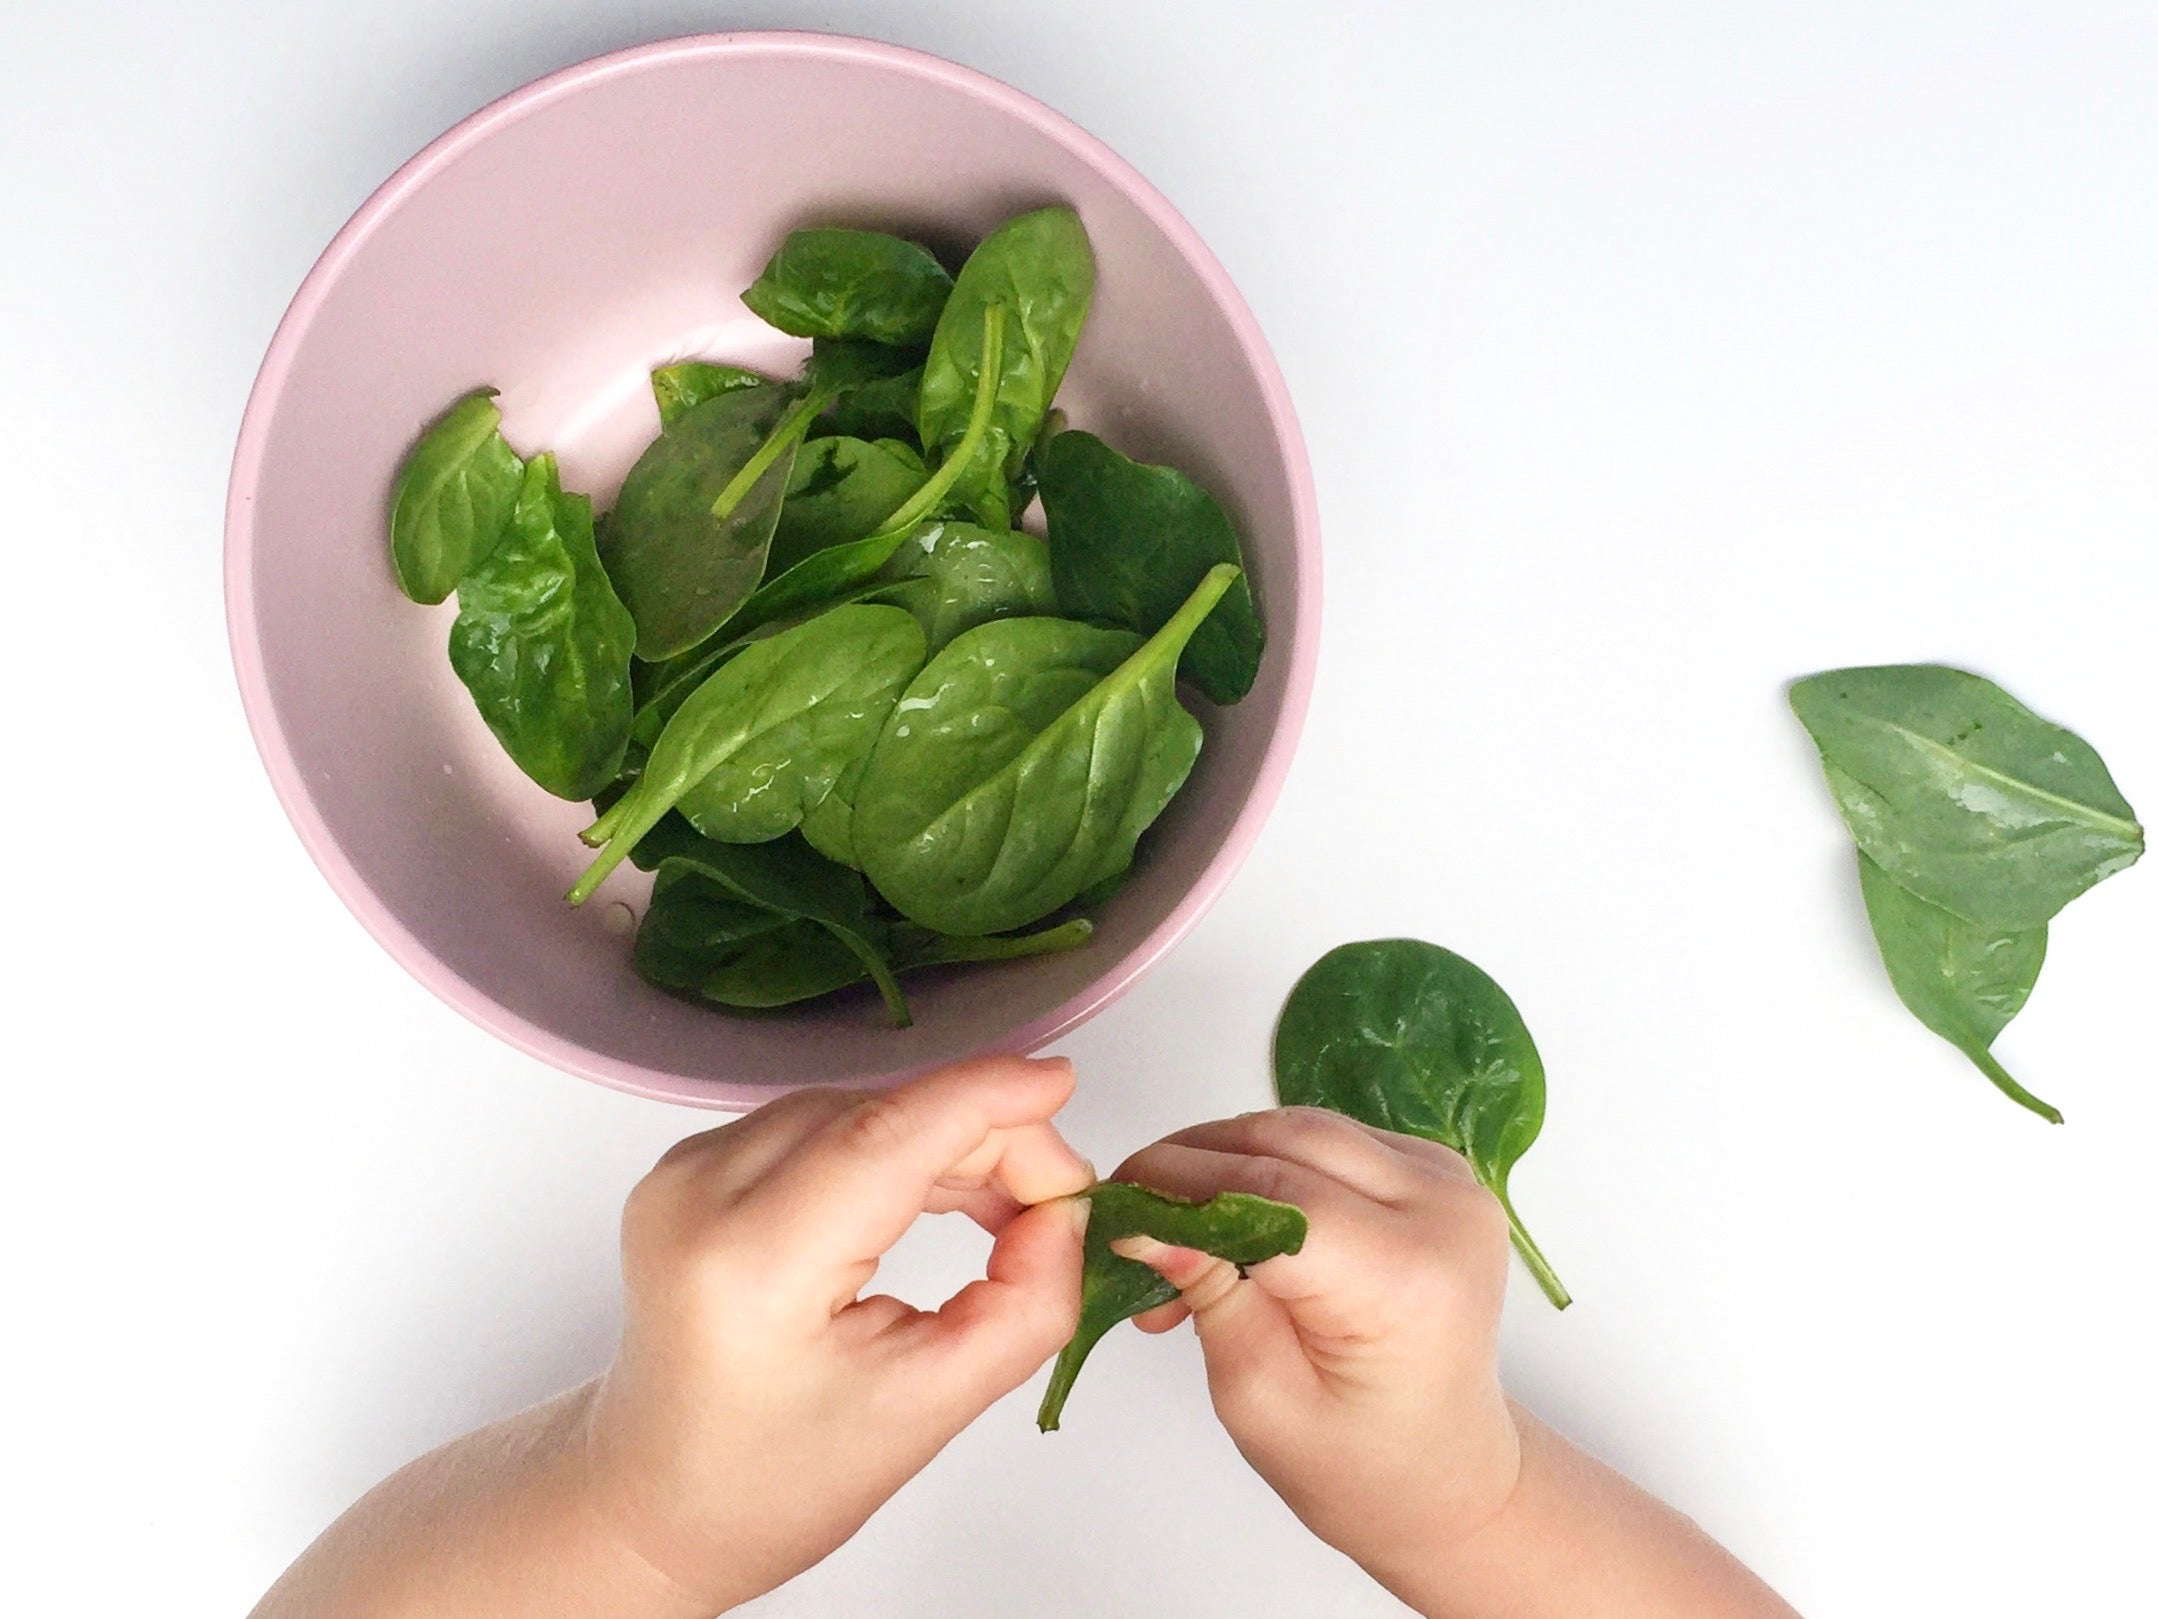 How To Get Your Kids to Eat More Greens